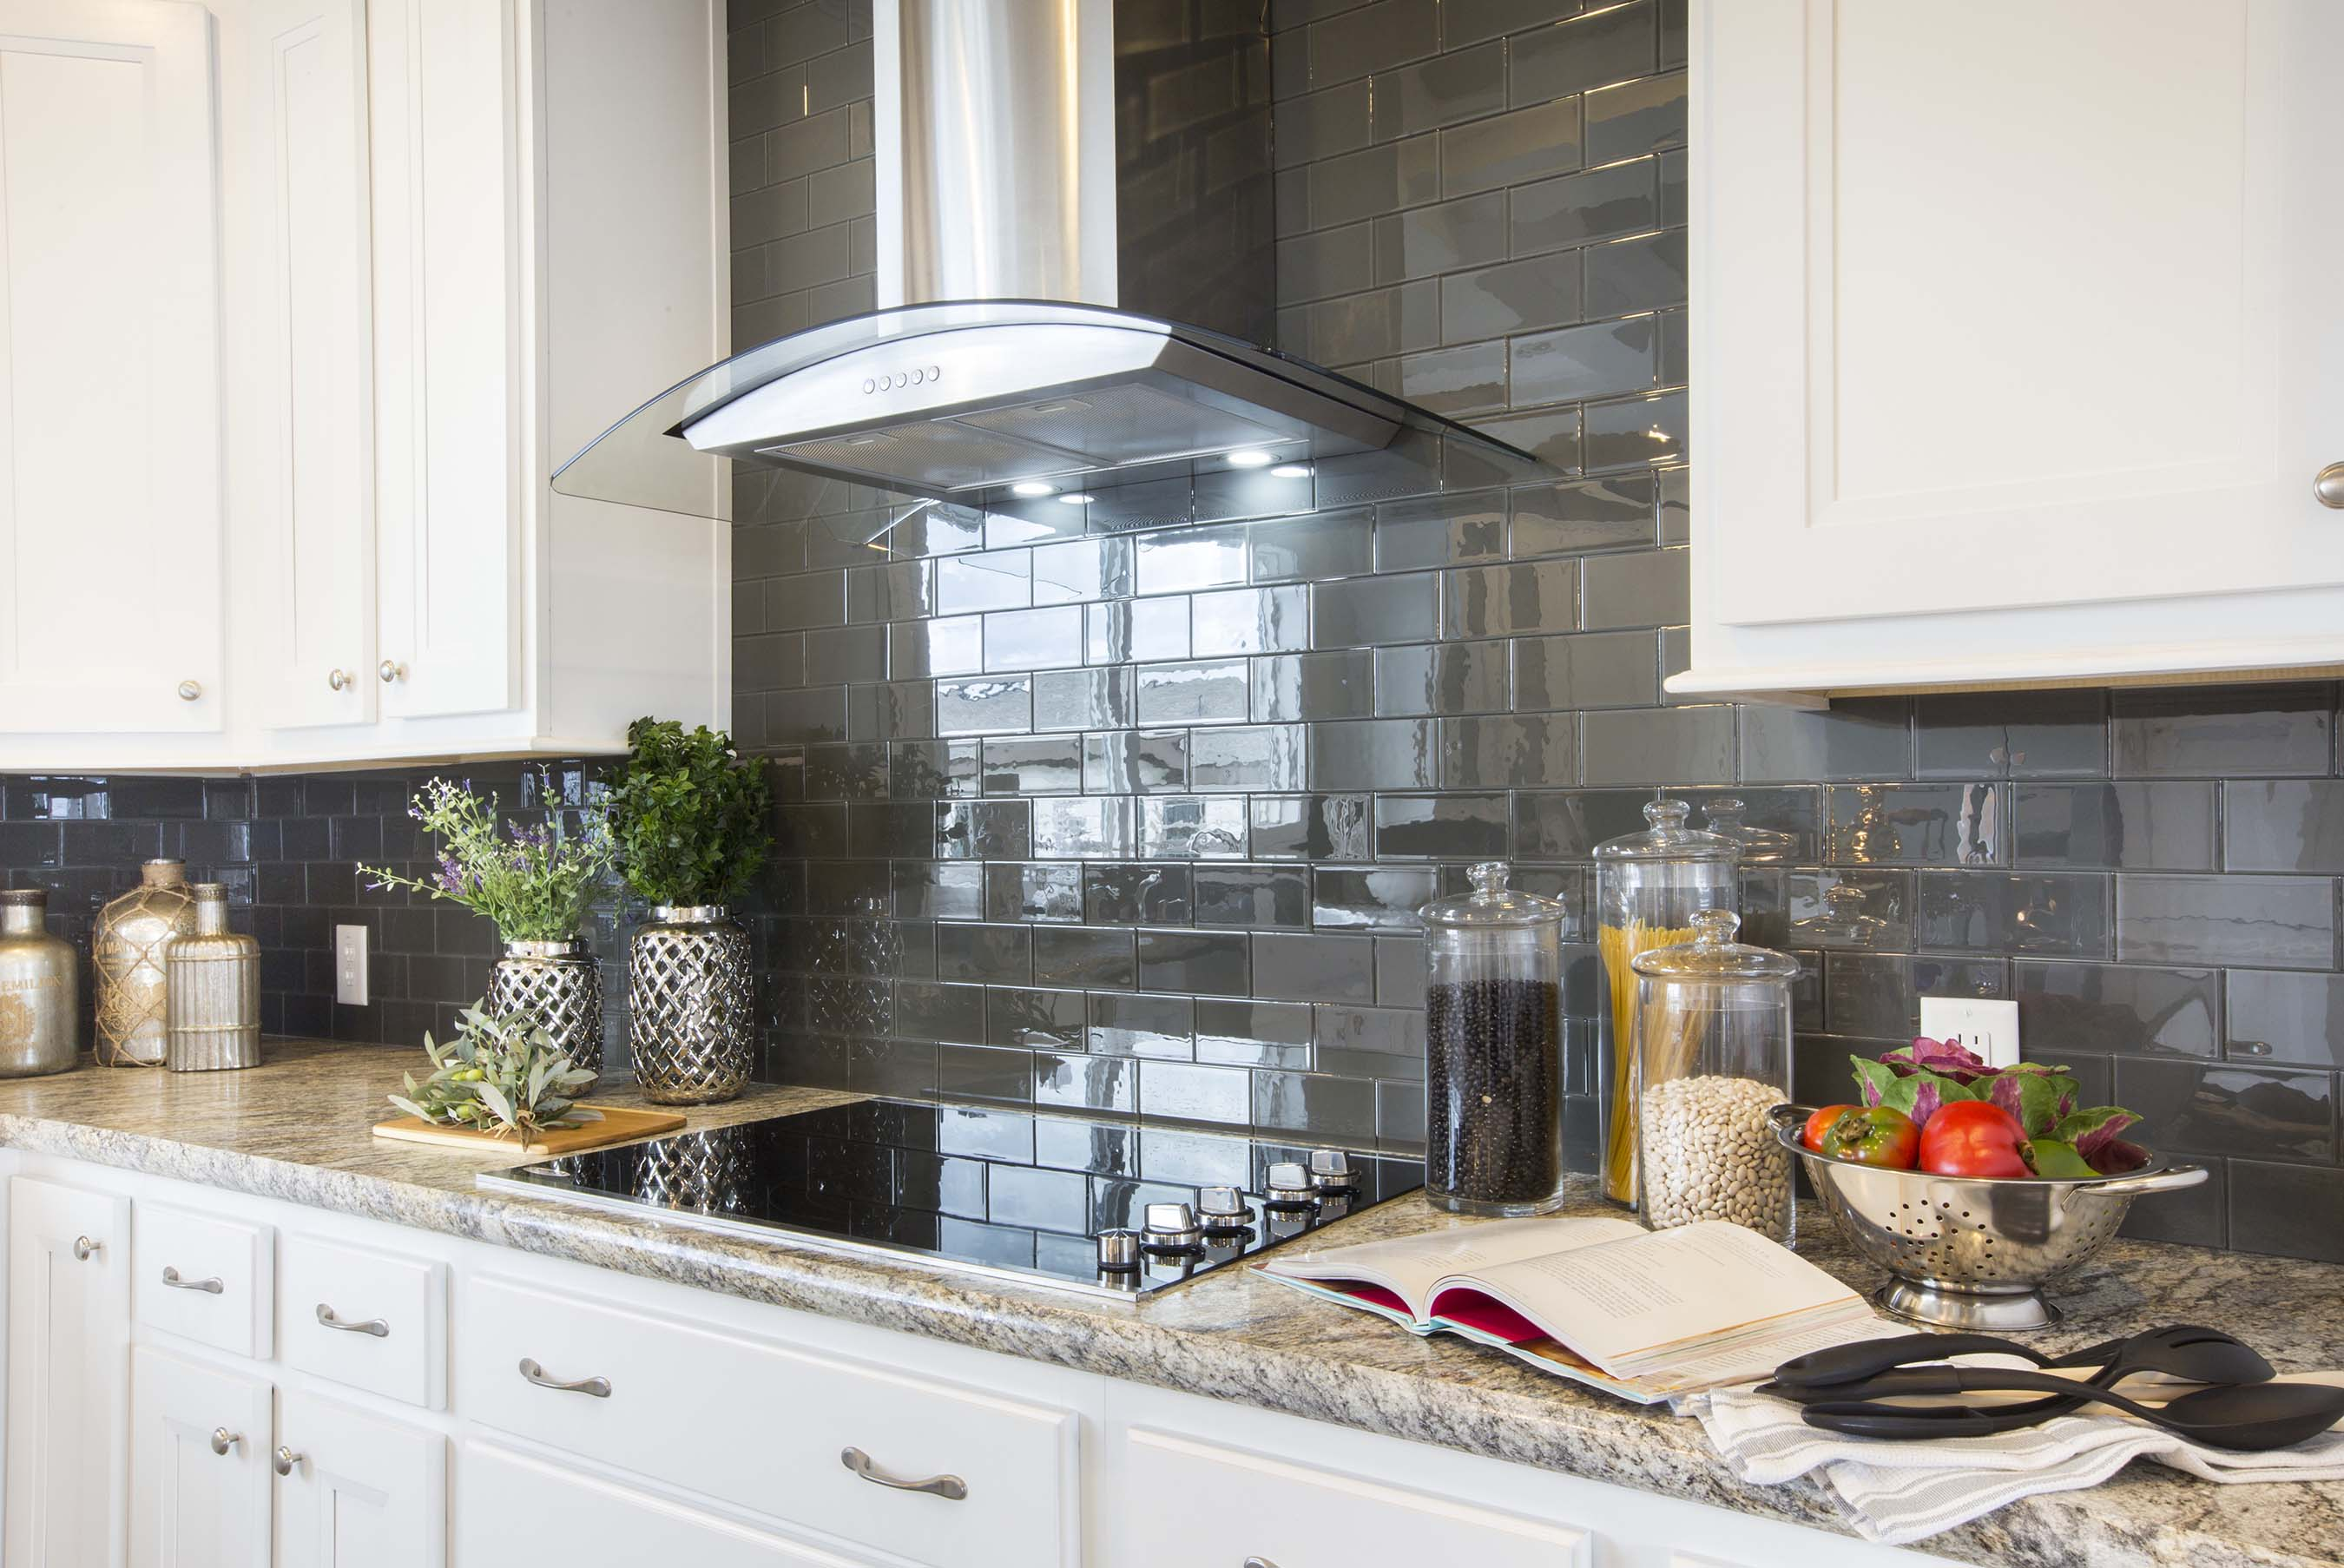 With Clayton Homes' custom kitchen designs, homebuyers can create the kitchen they've always dreamed of having.